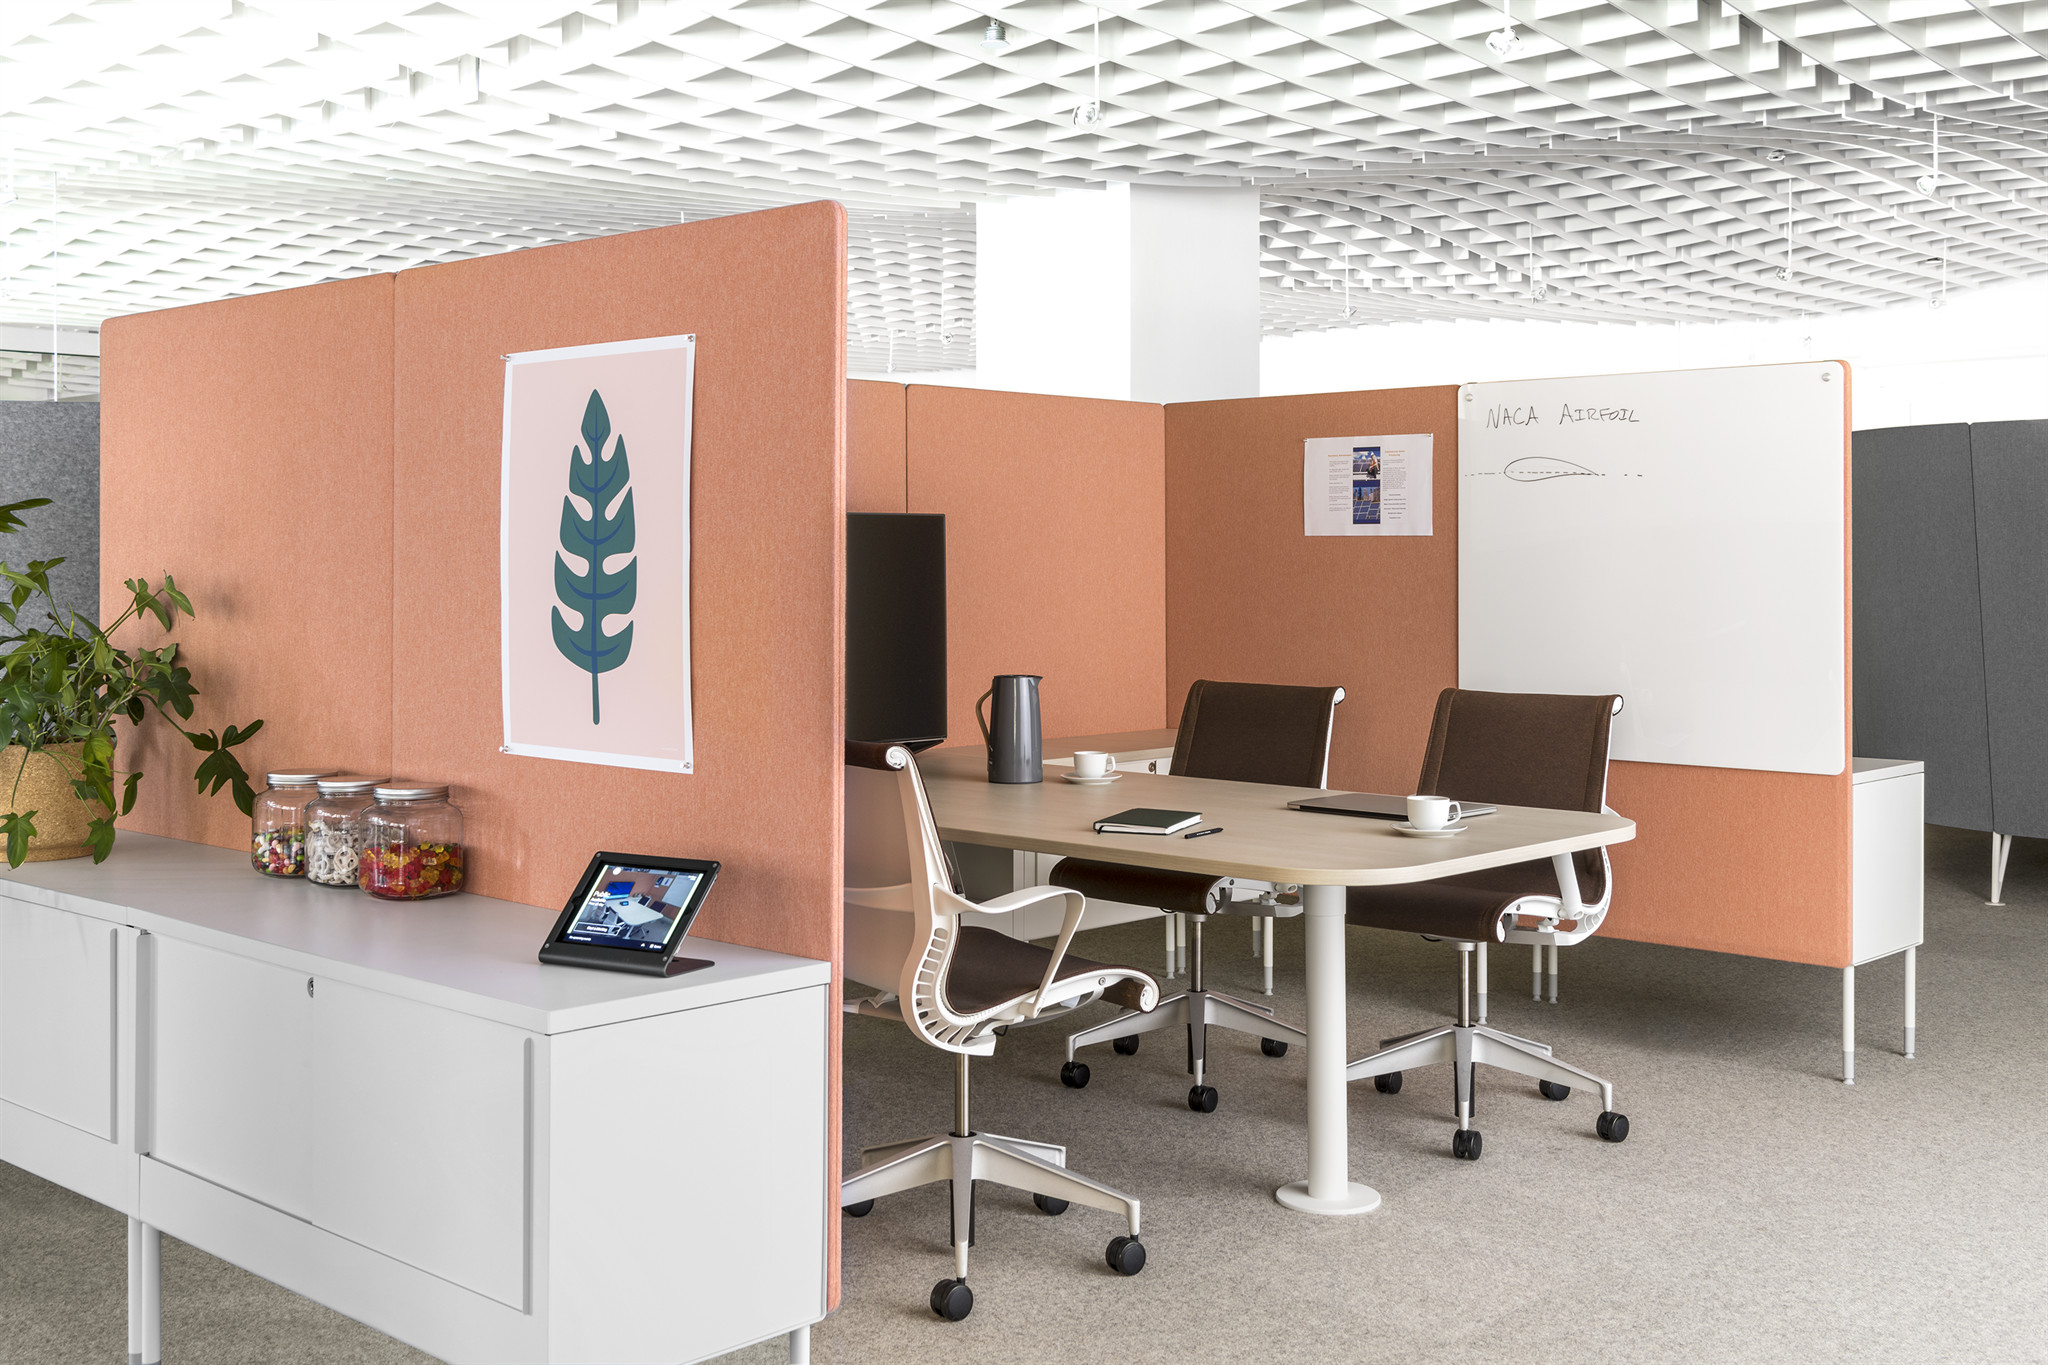 Best ideas about Commercial Office Furniture . Save or Pin fice Environments Now.